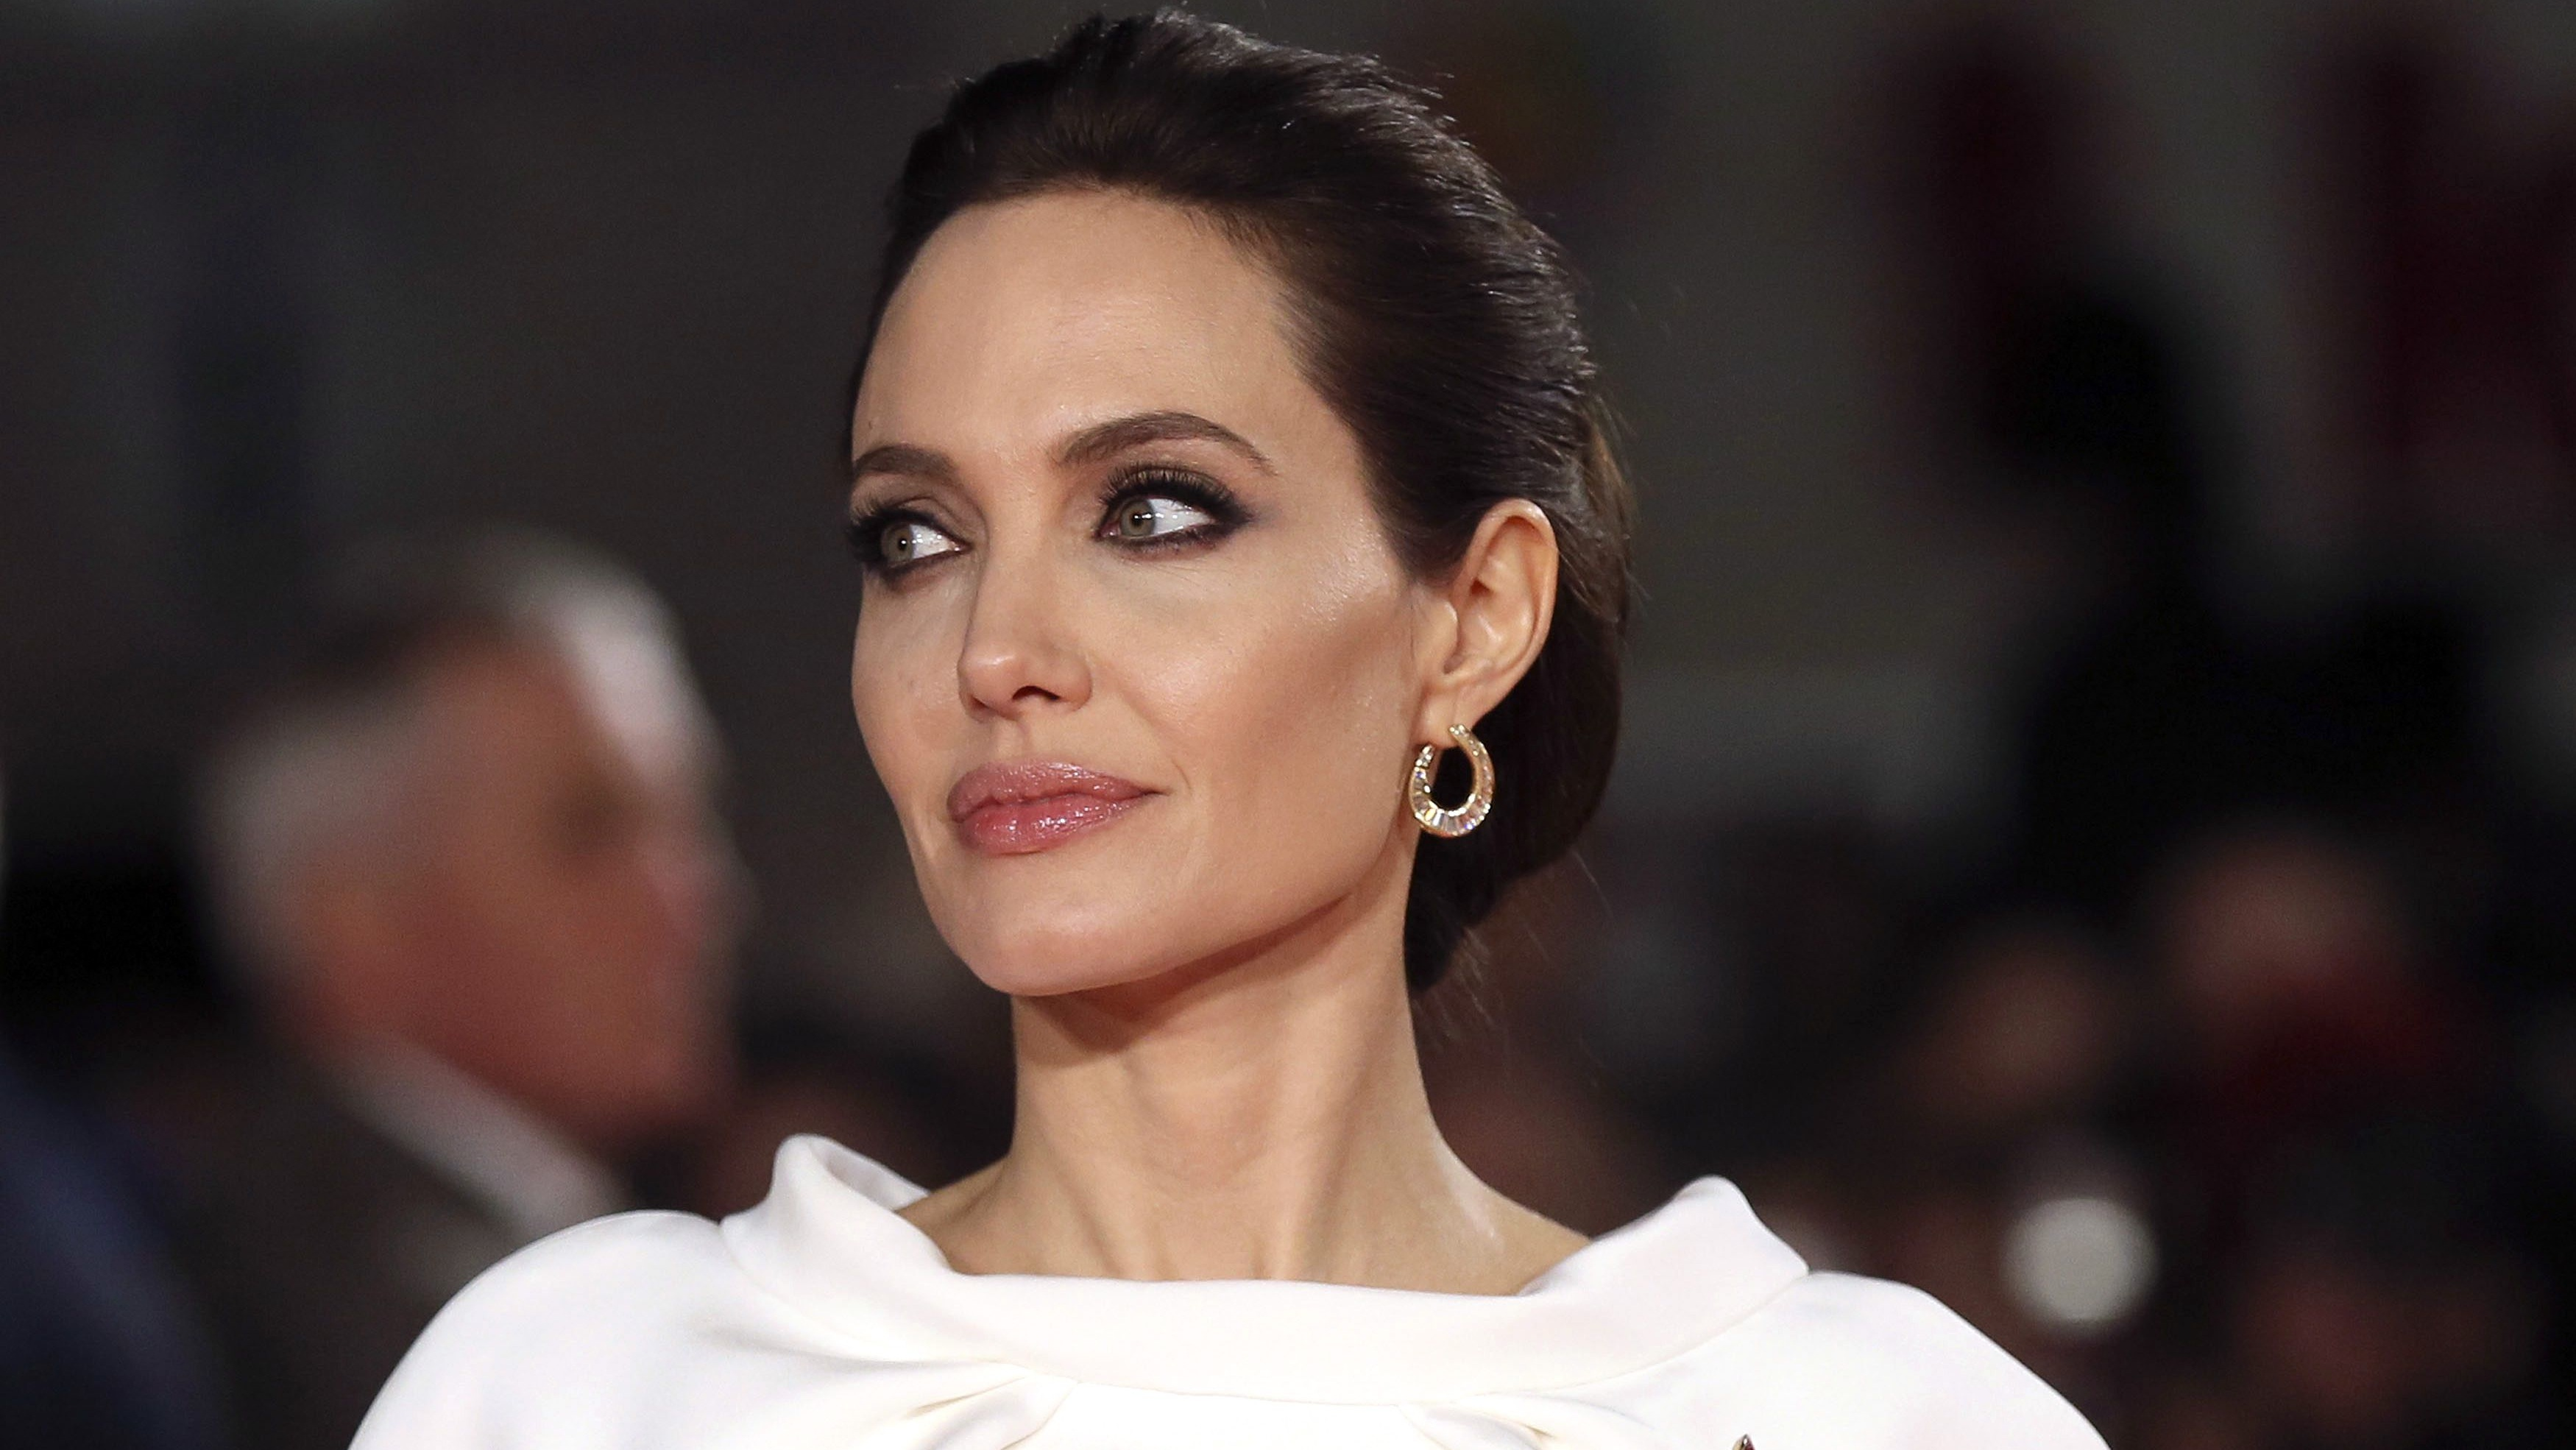 """Angelina Jolie poses for a photograph as she arrives for the UK premiere of """"Unbroken""""."""